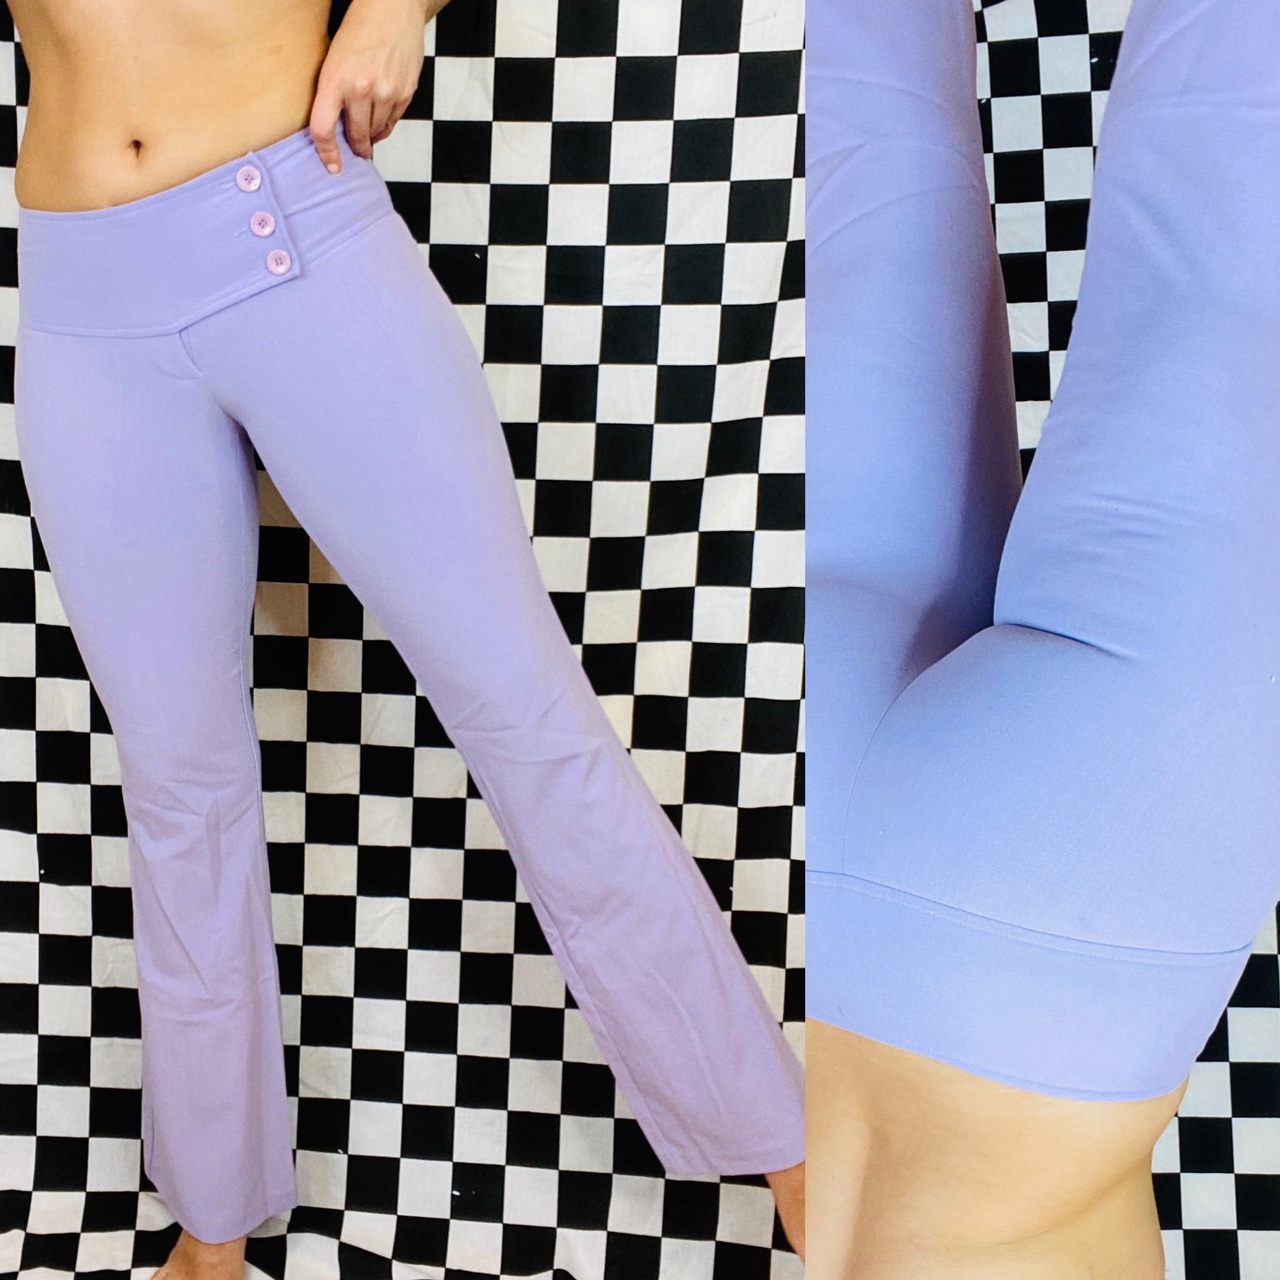 Vintage 90s 2000s XOXO lilac kick flare bottoms. These